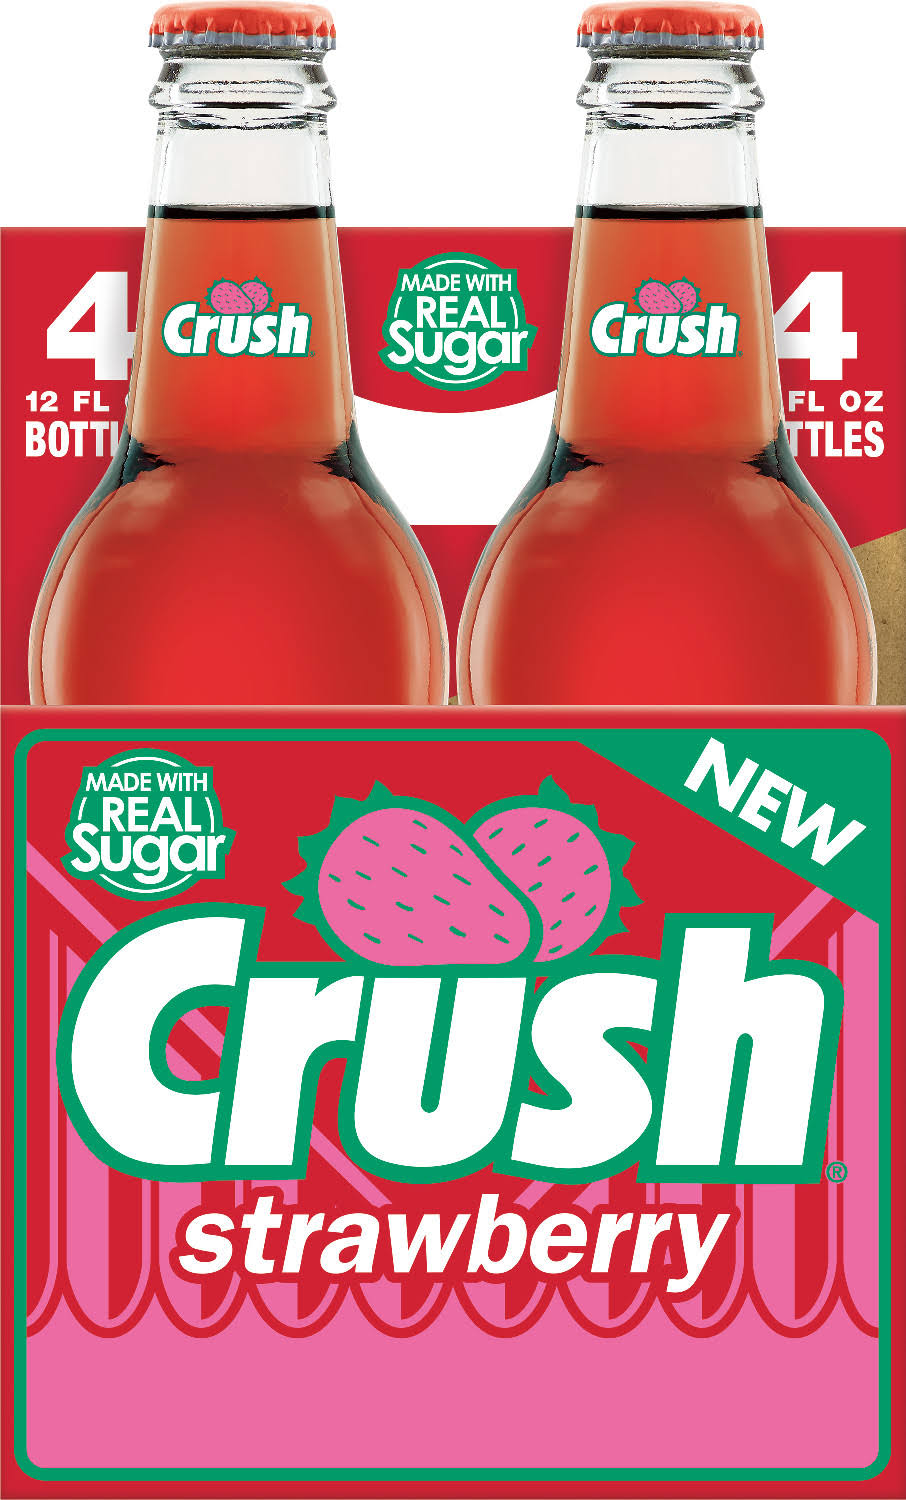 Crush Strawberry Soda - 4 pack, 12 fl oz bottles